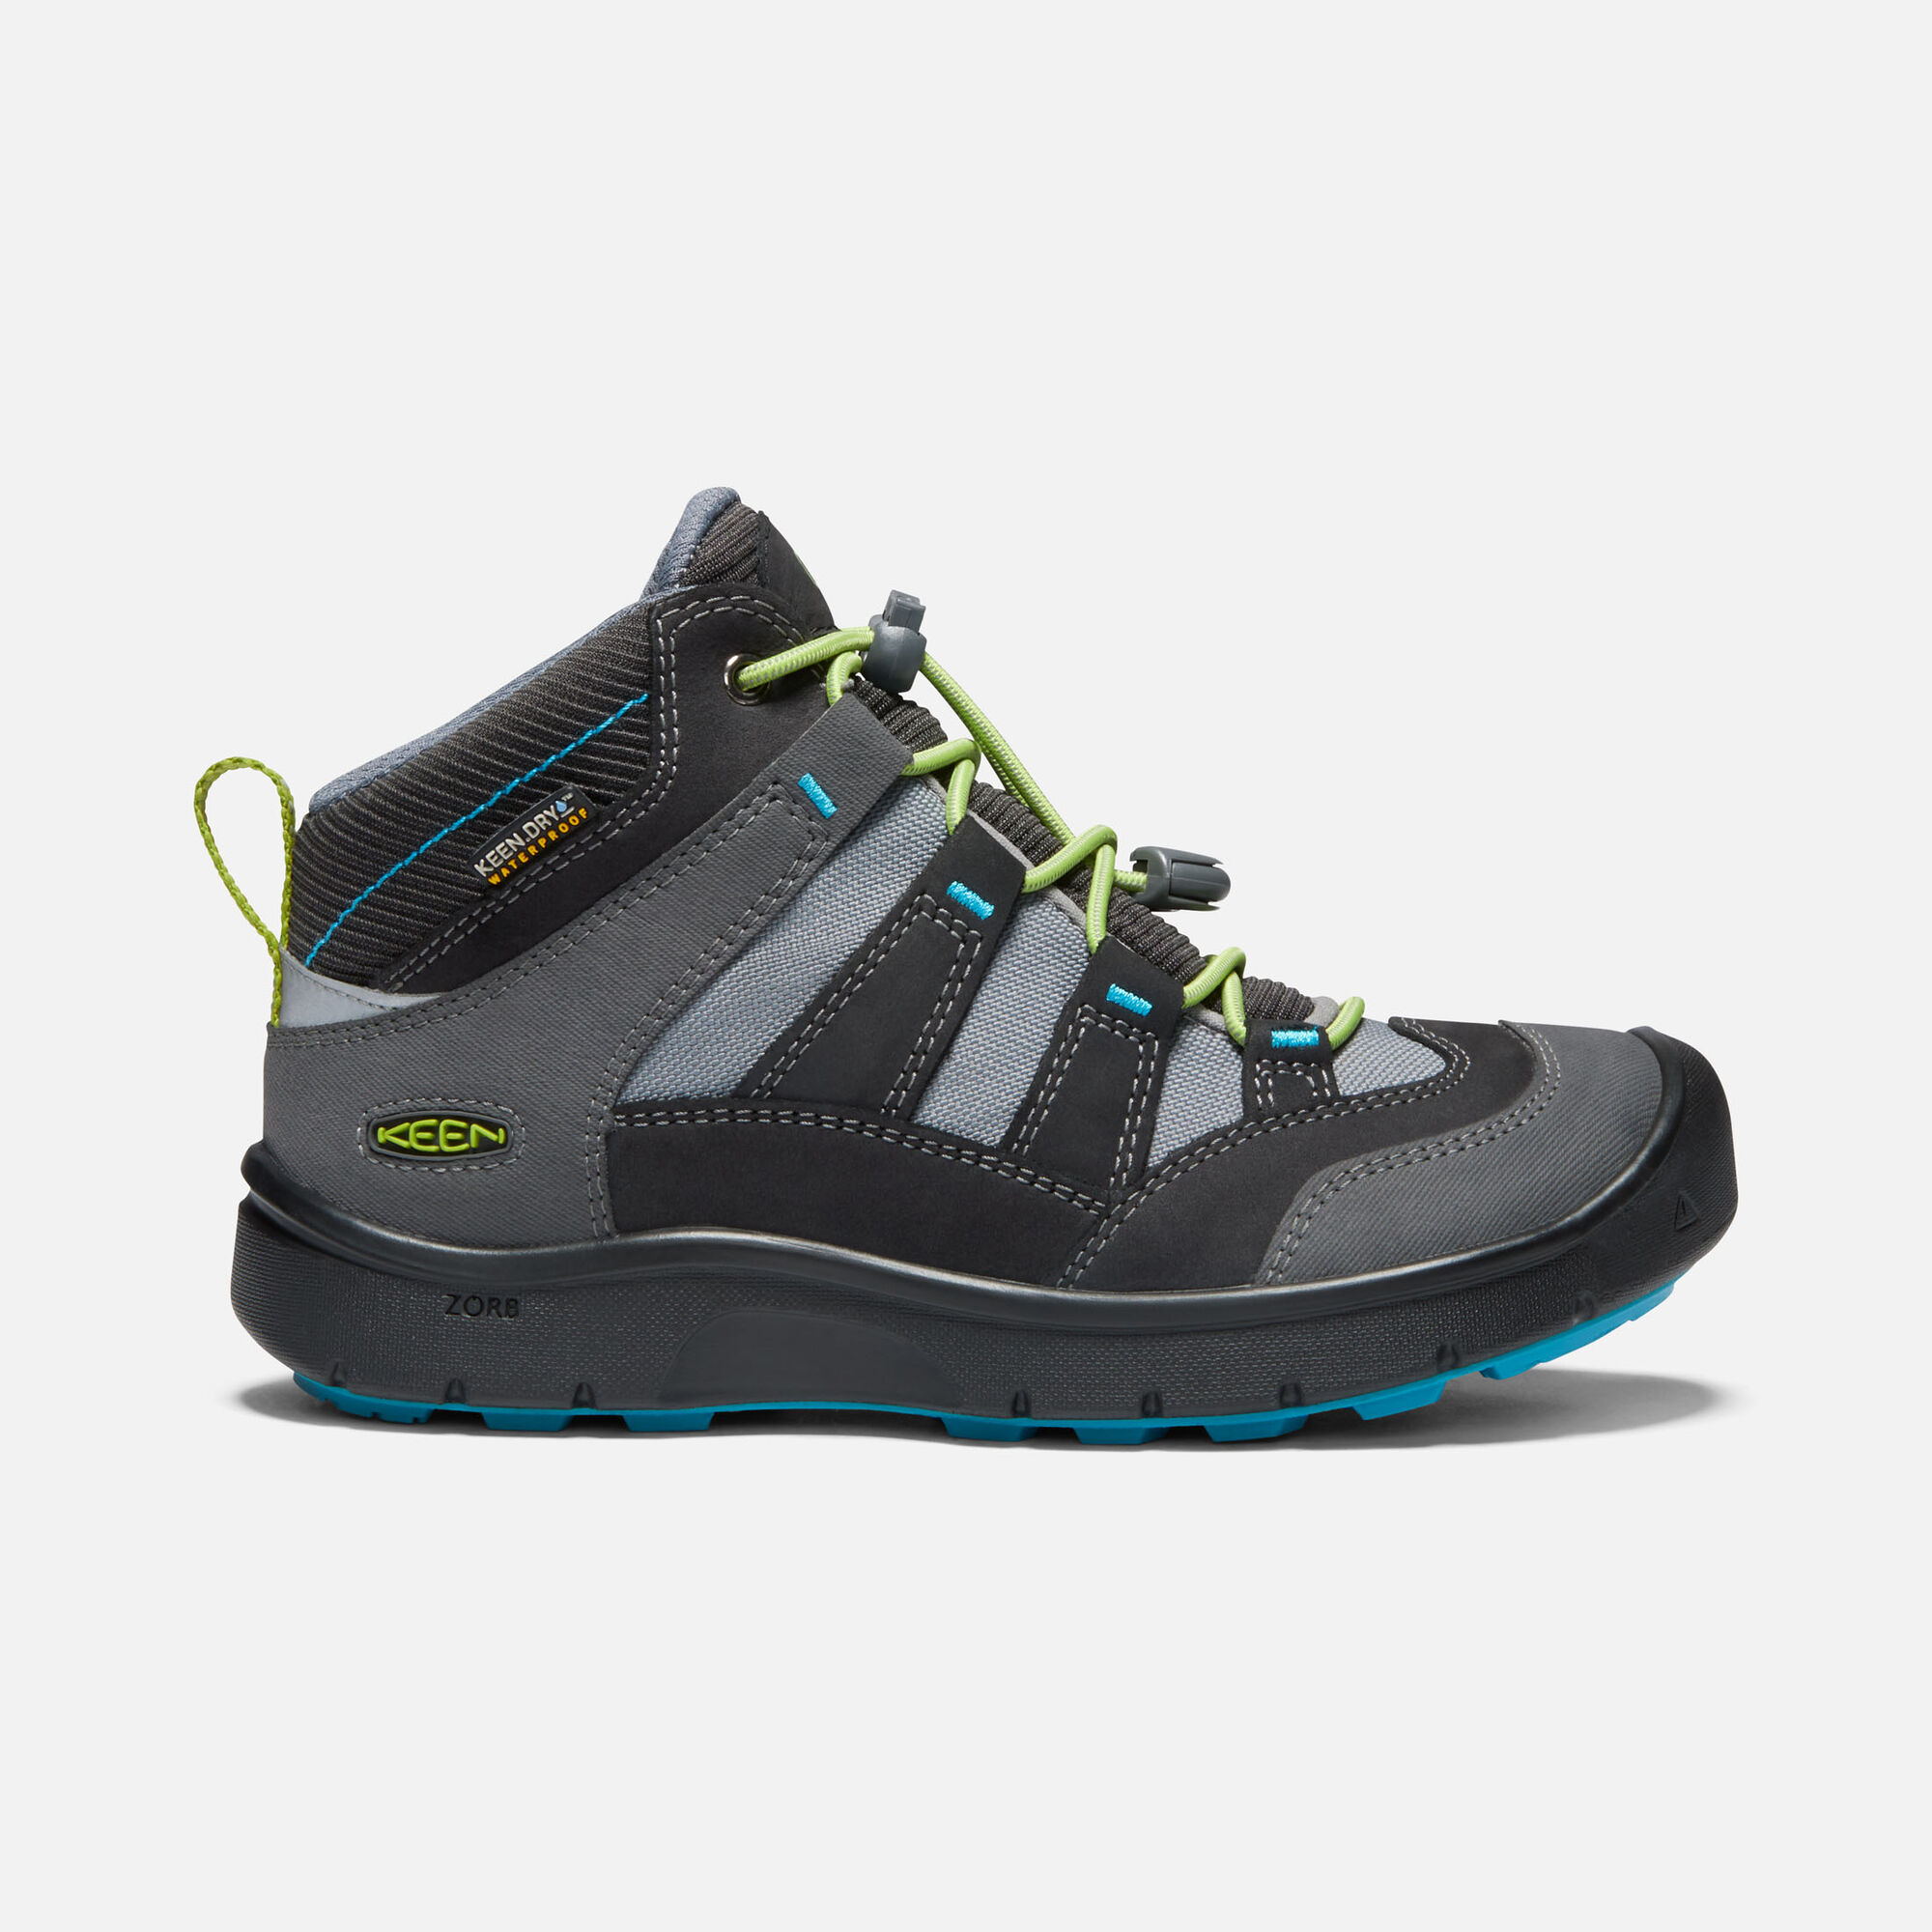 Big Kids  HIKEPORT Waterproof Mid in MAGNET GREENERY - small view. ad704db43c